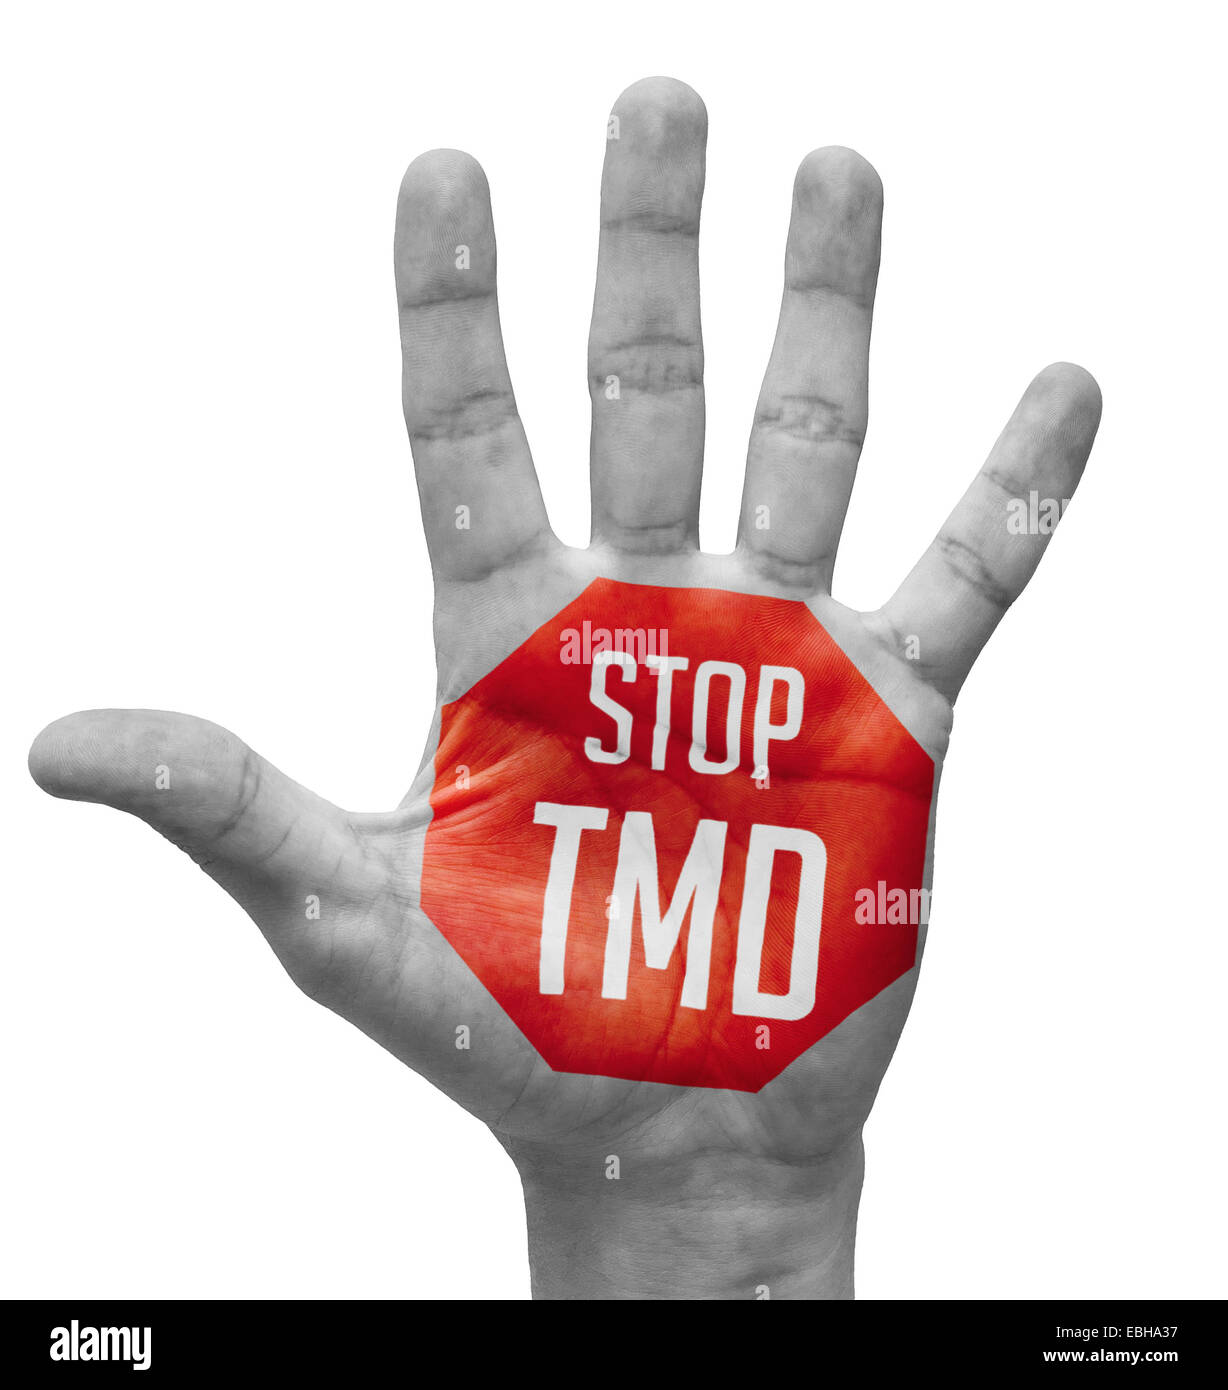 Stop TMD Sign Painted, Open Hand Raised, Isolated on White Background. - Stock Image